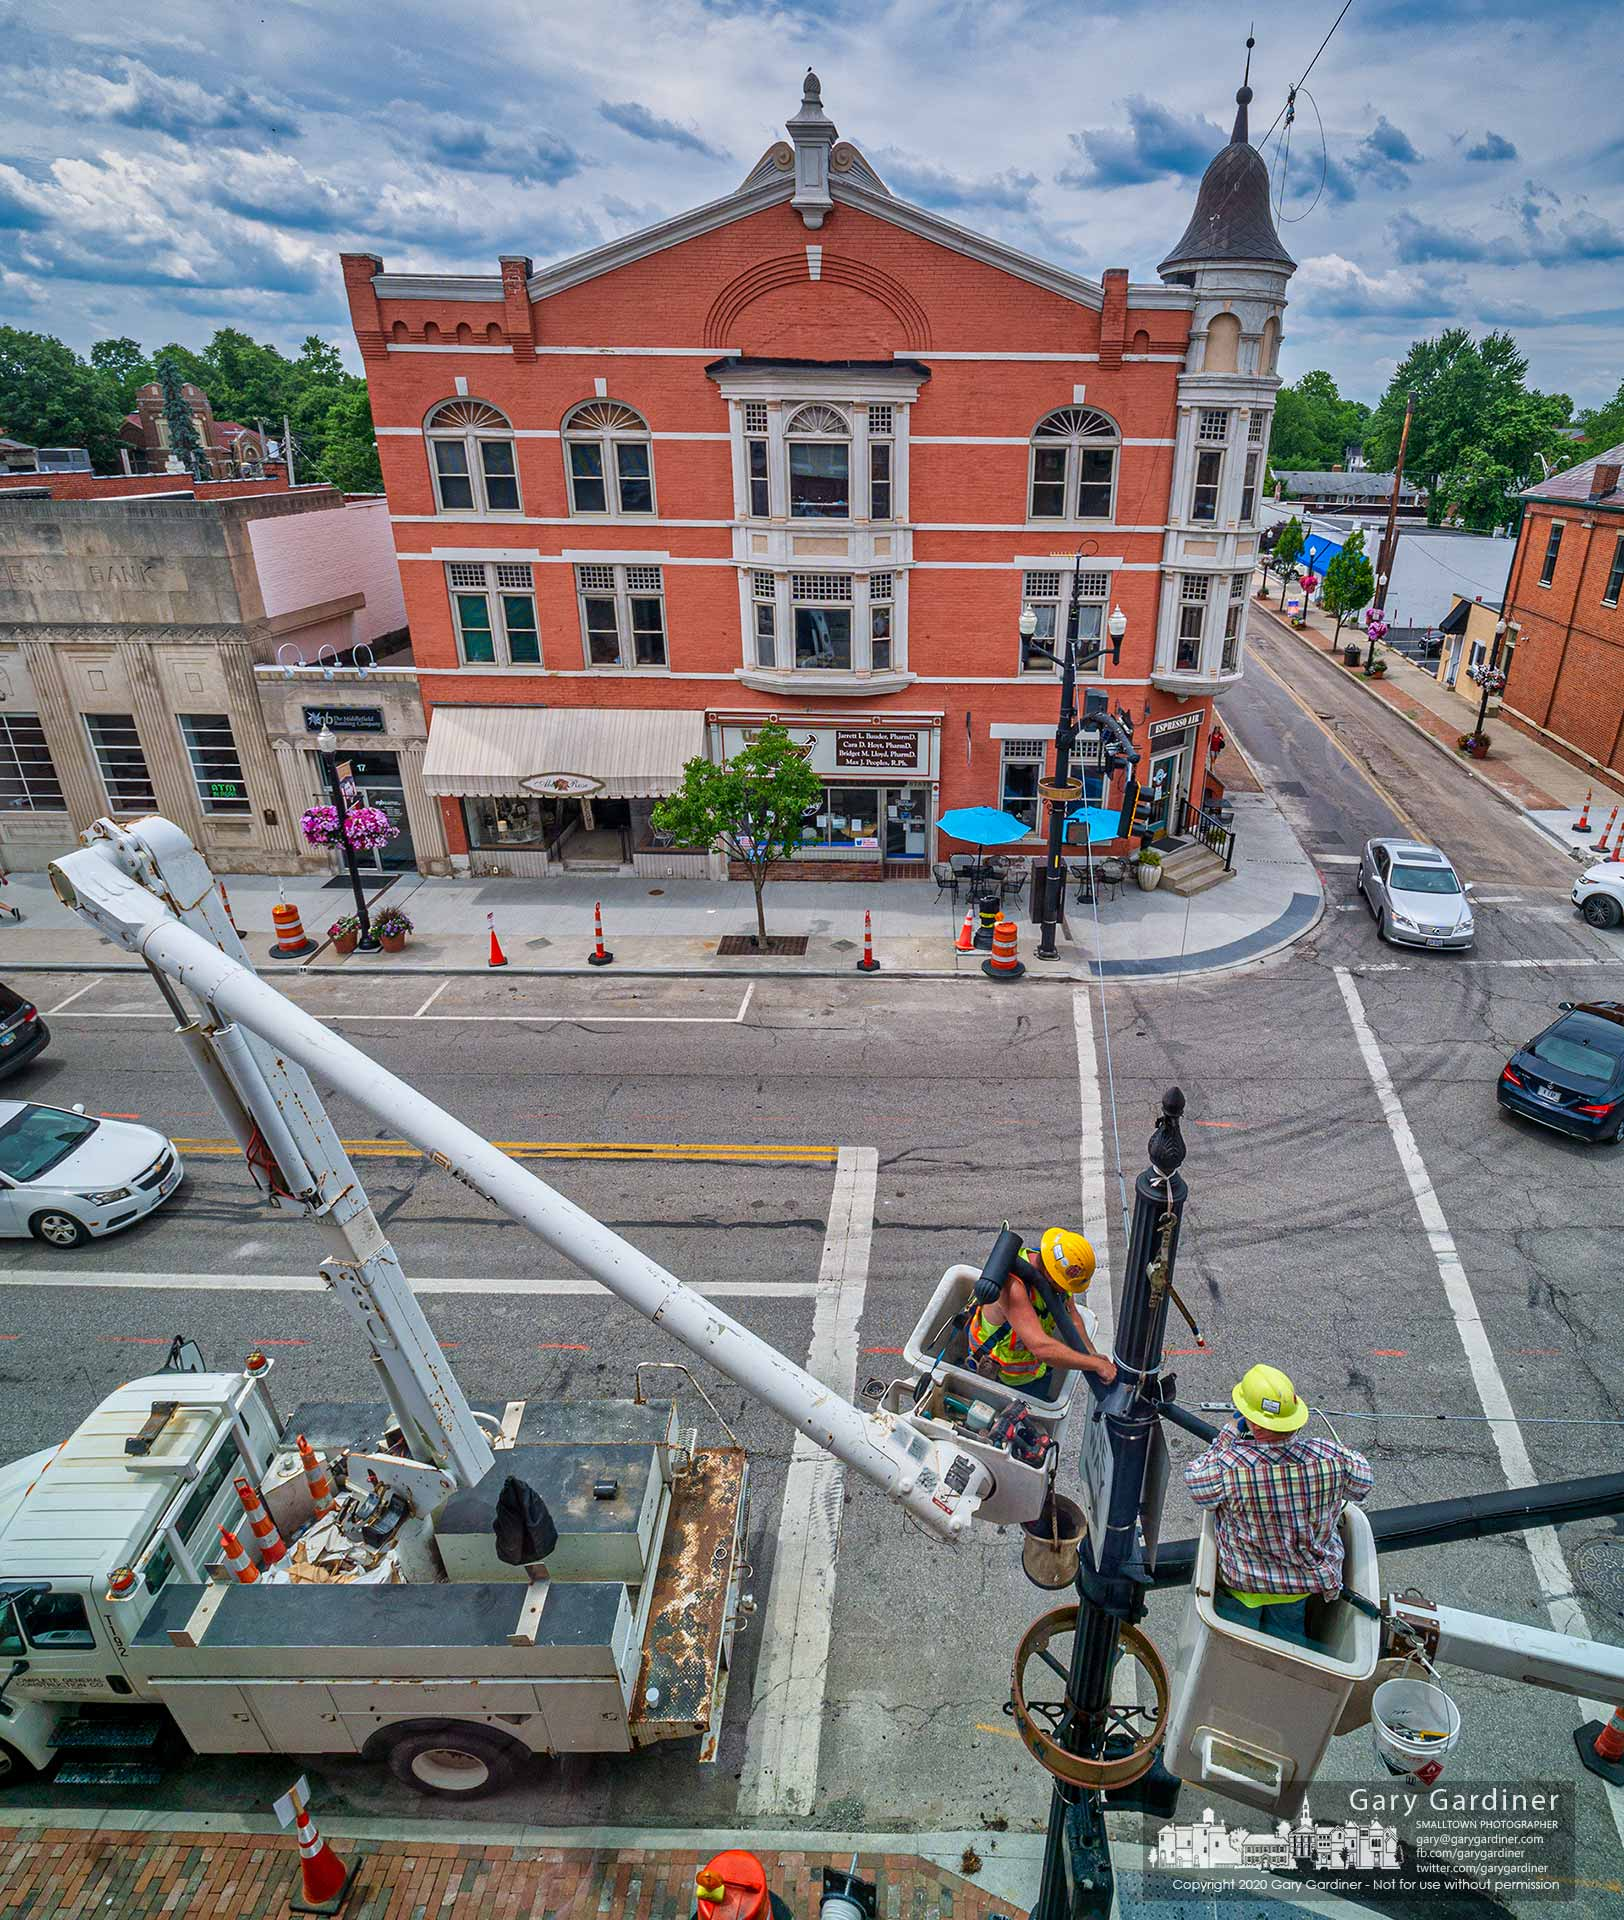 Electricians rewire a light pole at State and Main as part of the Uptown Improvement Project. My Final Photo for June 26, 2020.